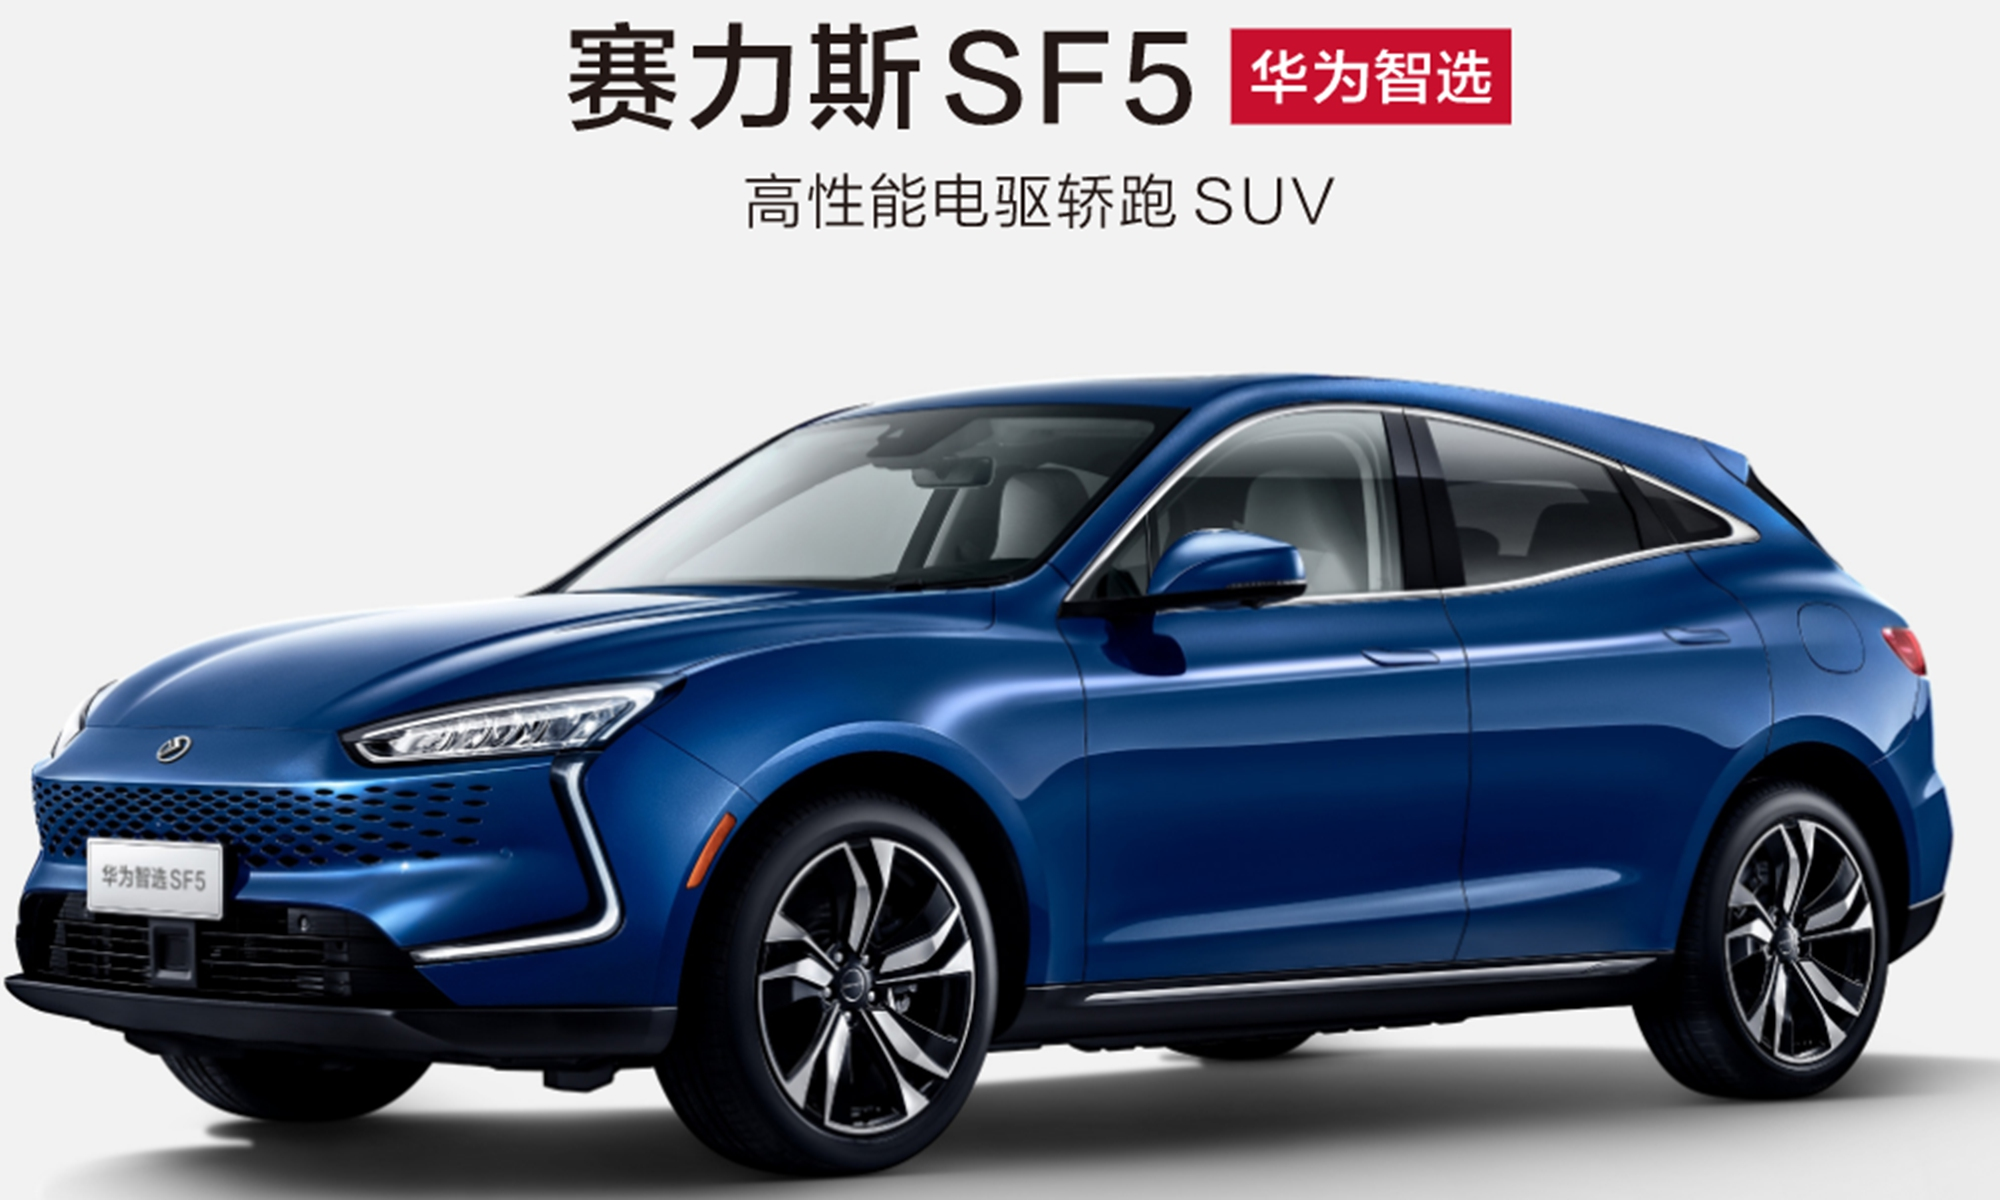 The SF5 that was jointly launched by Huawei and Chinese auto maker SERES Photo: Screenshot of Huawei's website